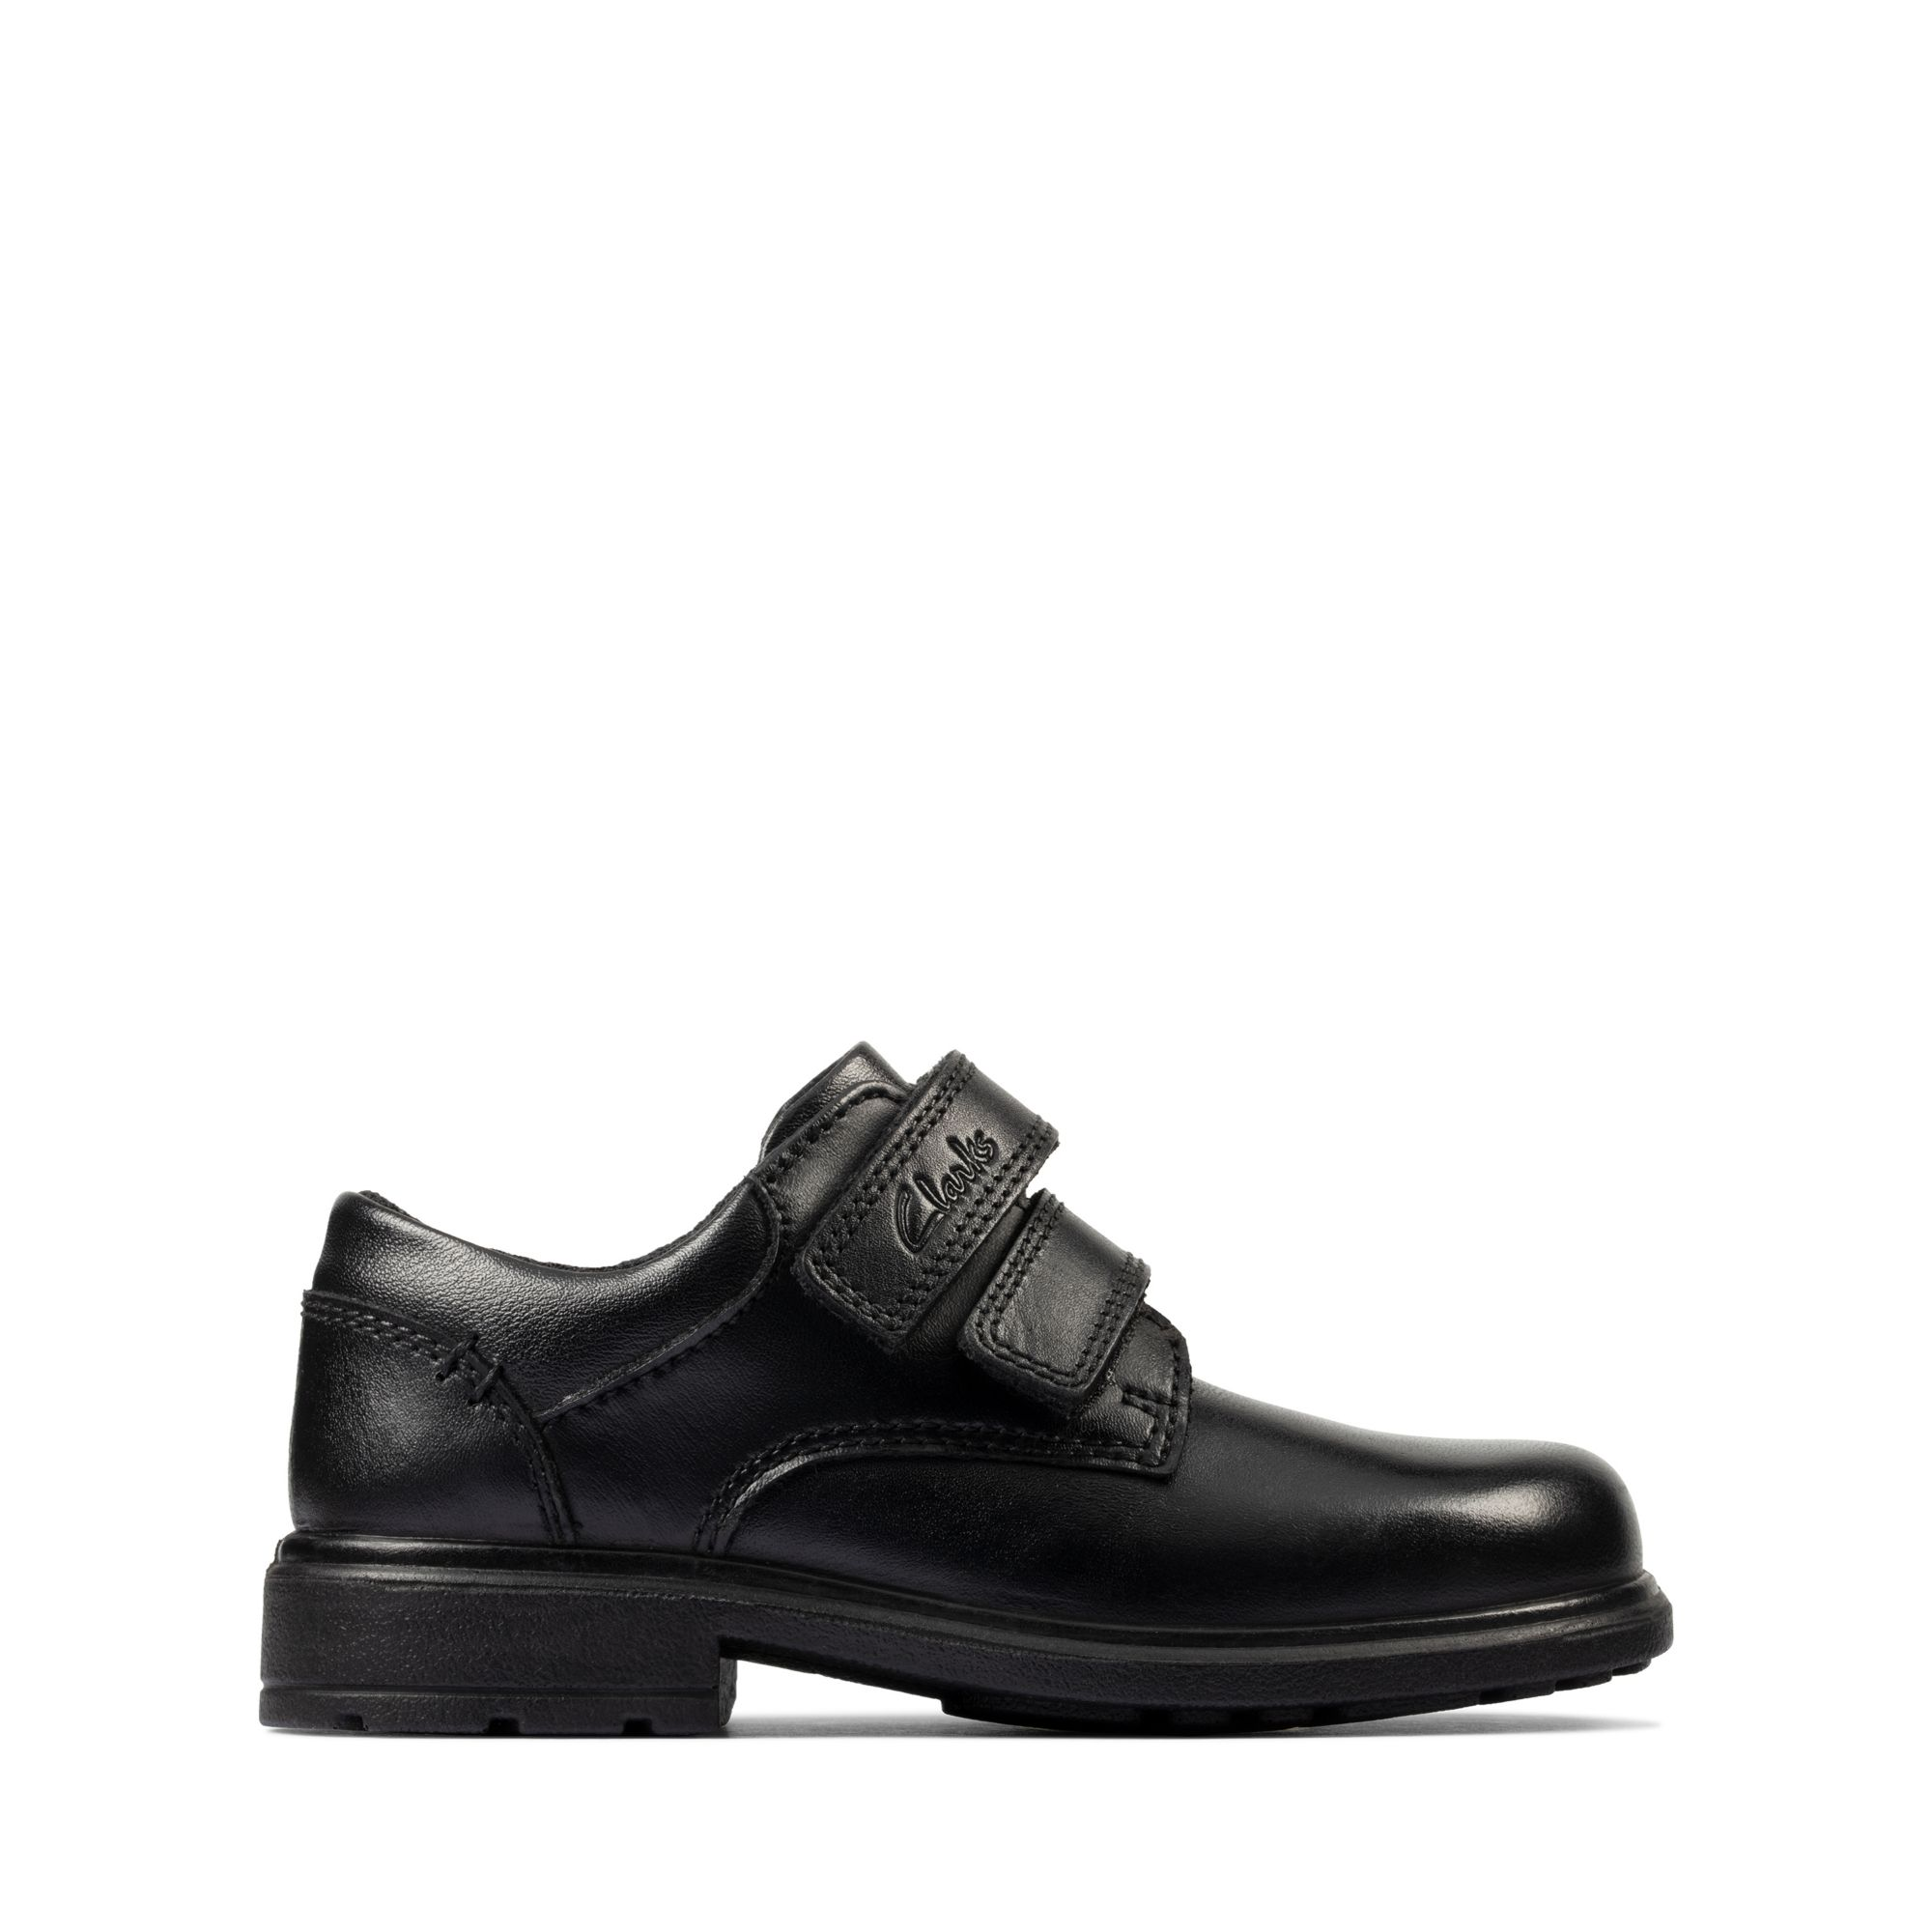 Clarks Remi Pace Toddler – Leather